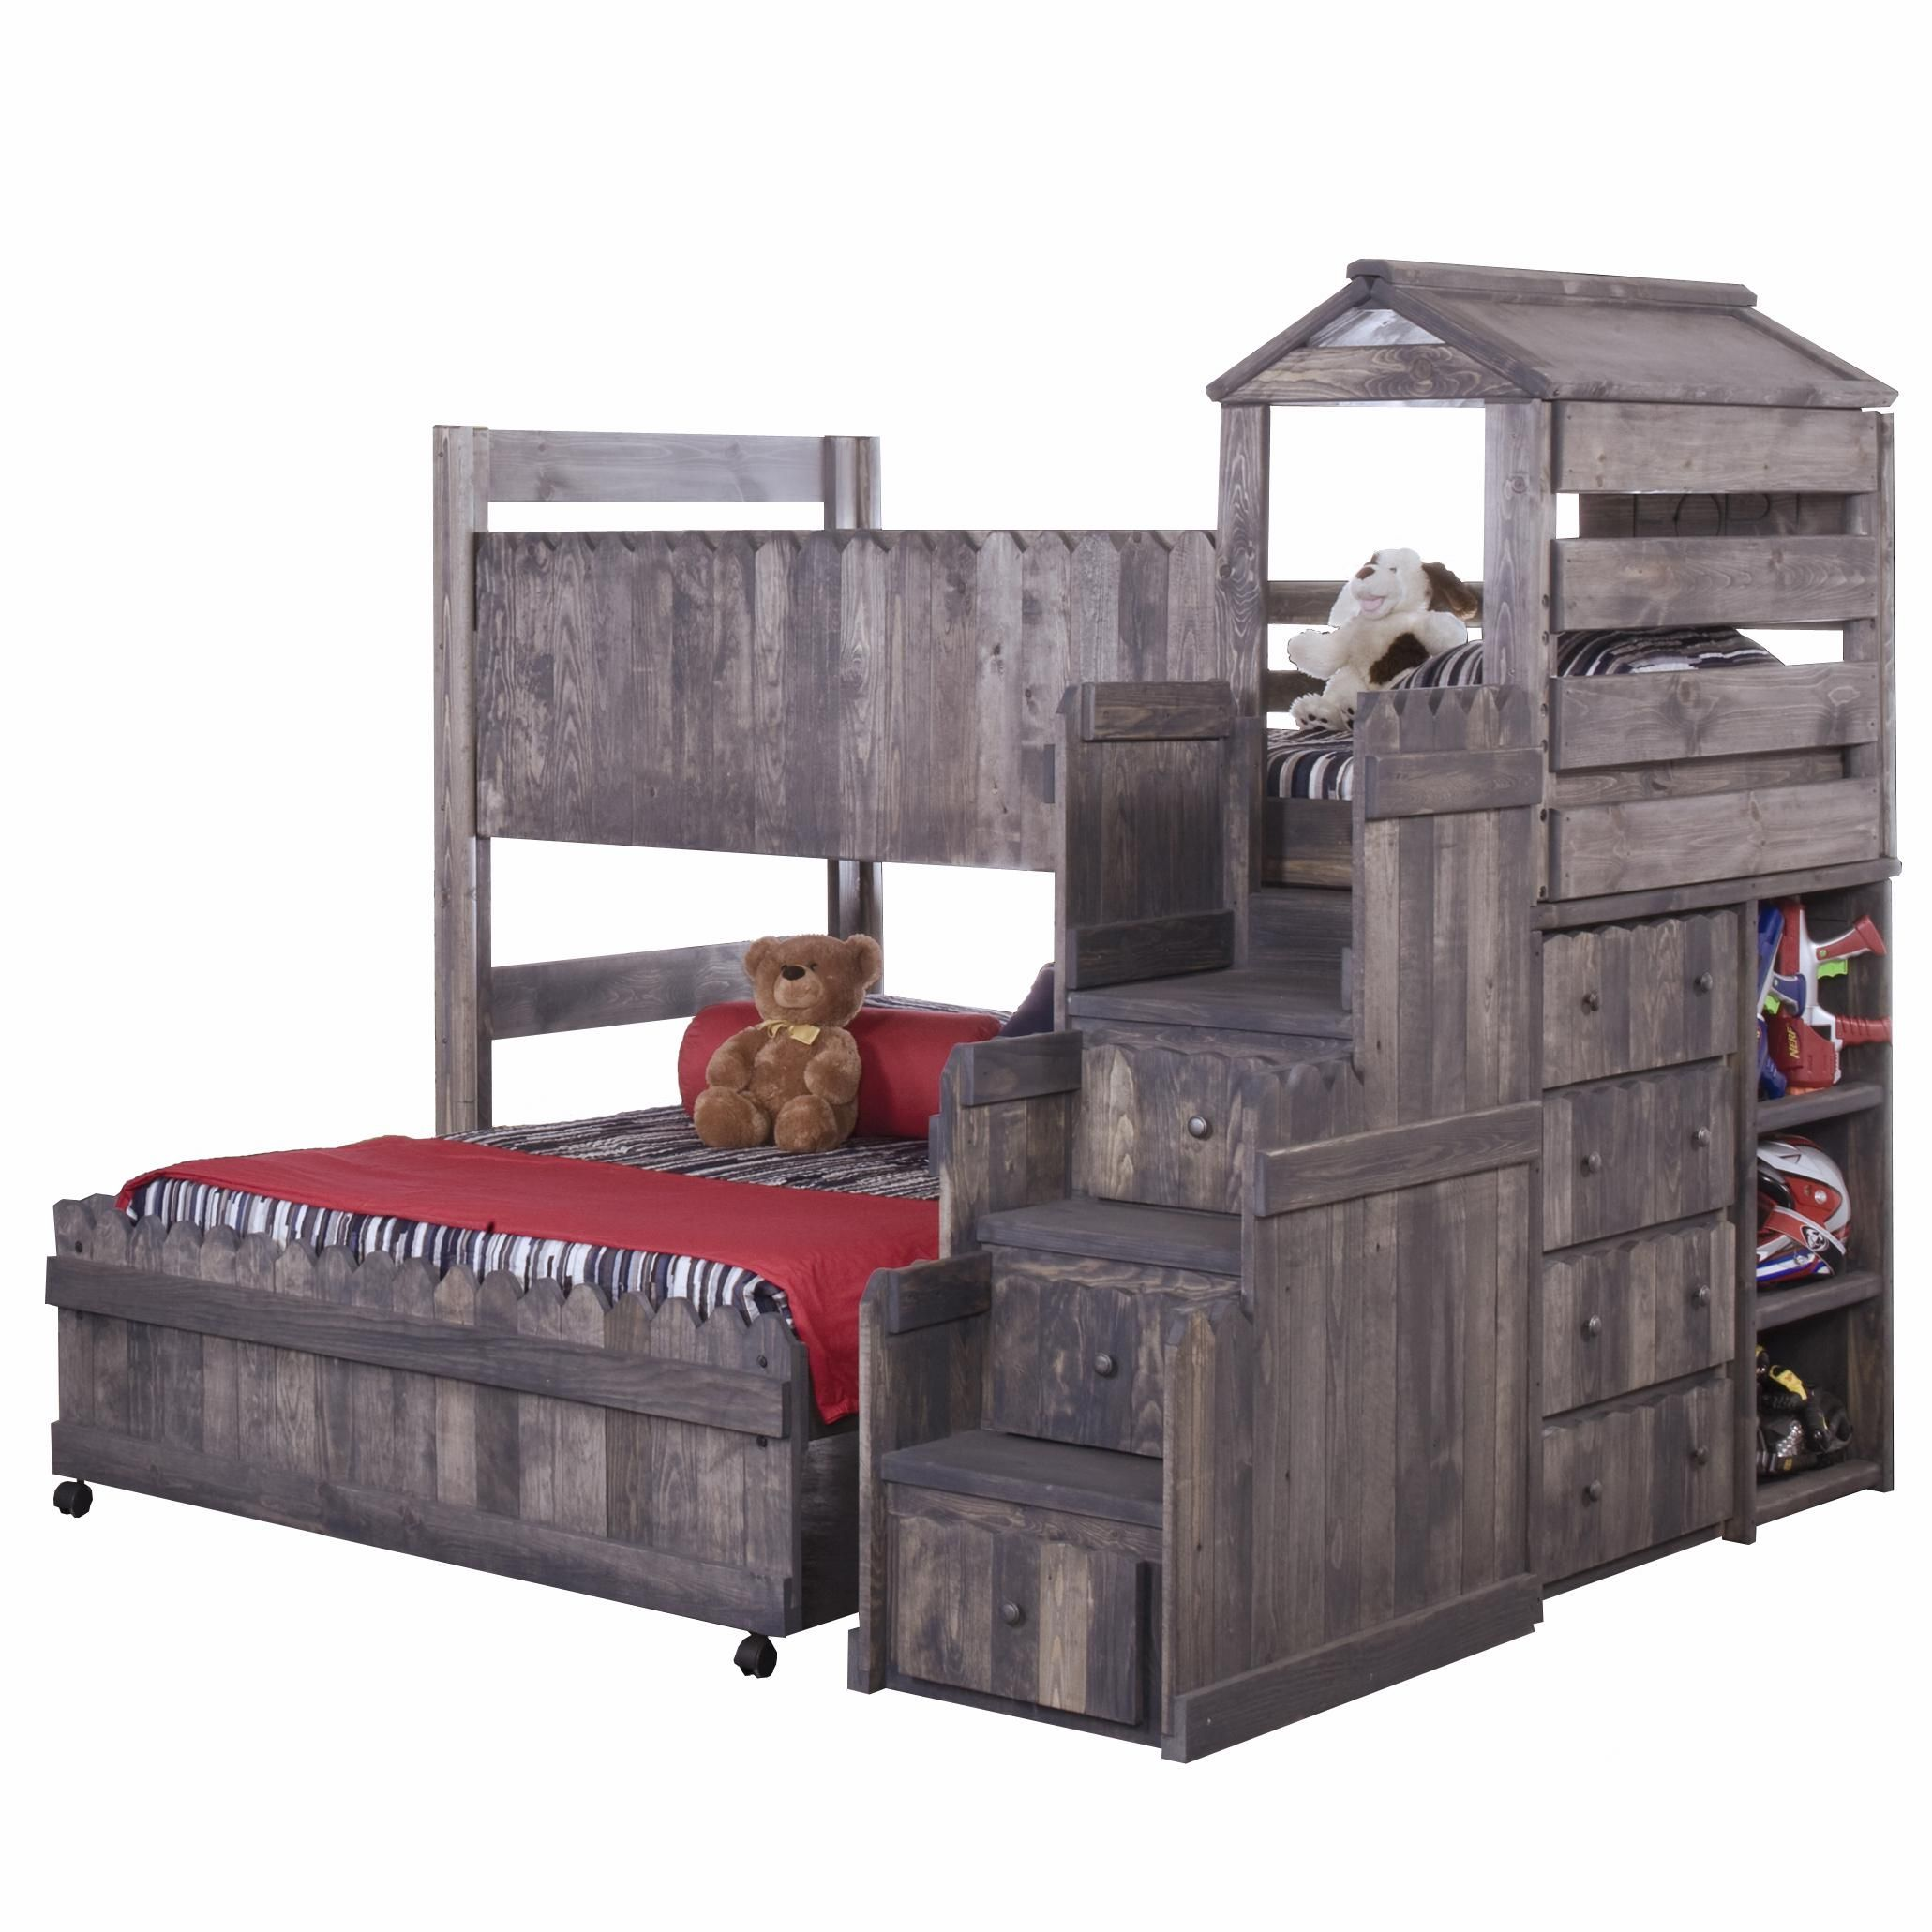 The Fort Twin Full plete Loft Fort Bed with Stairway Chest by